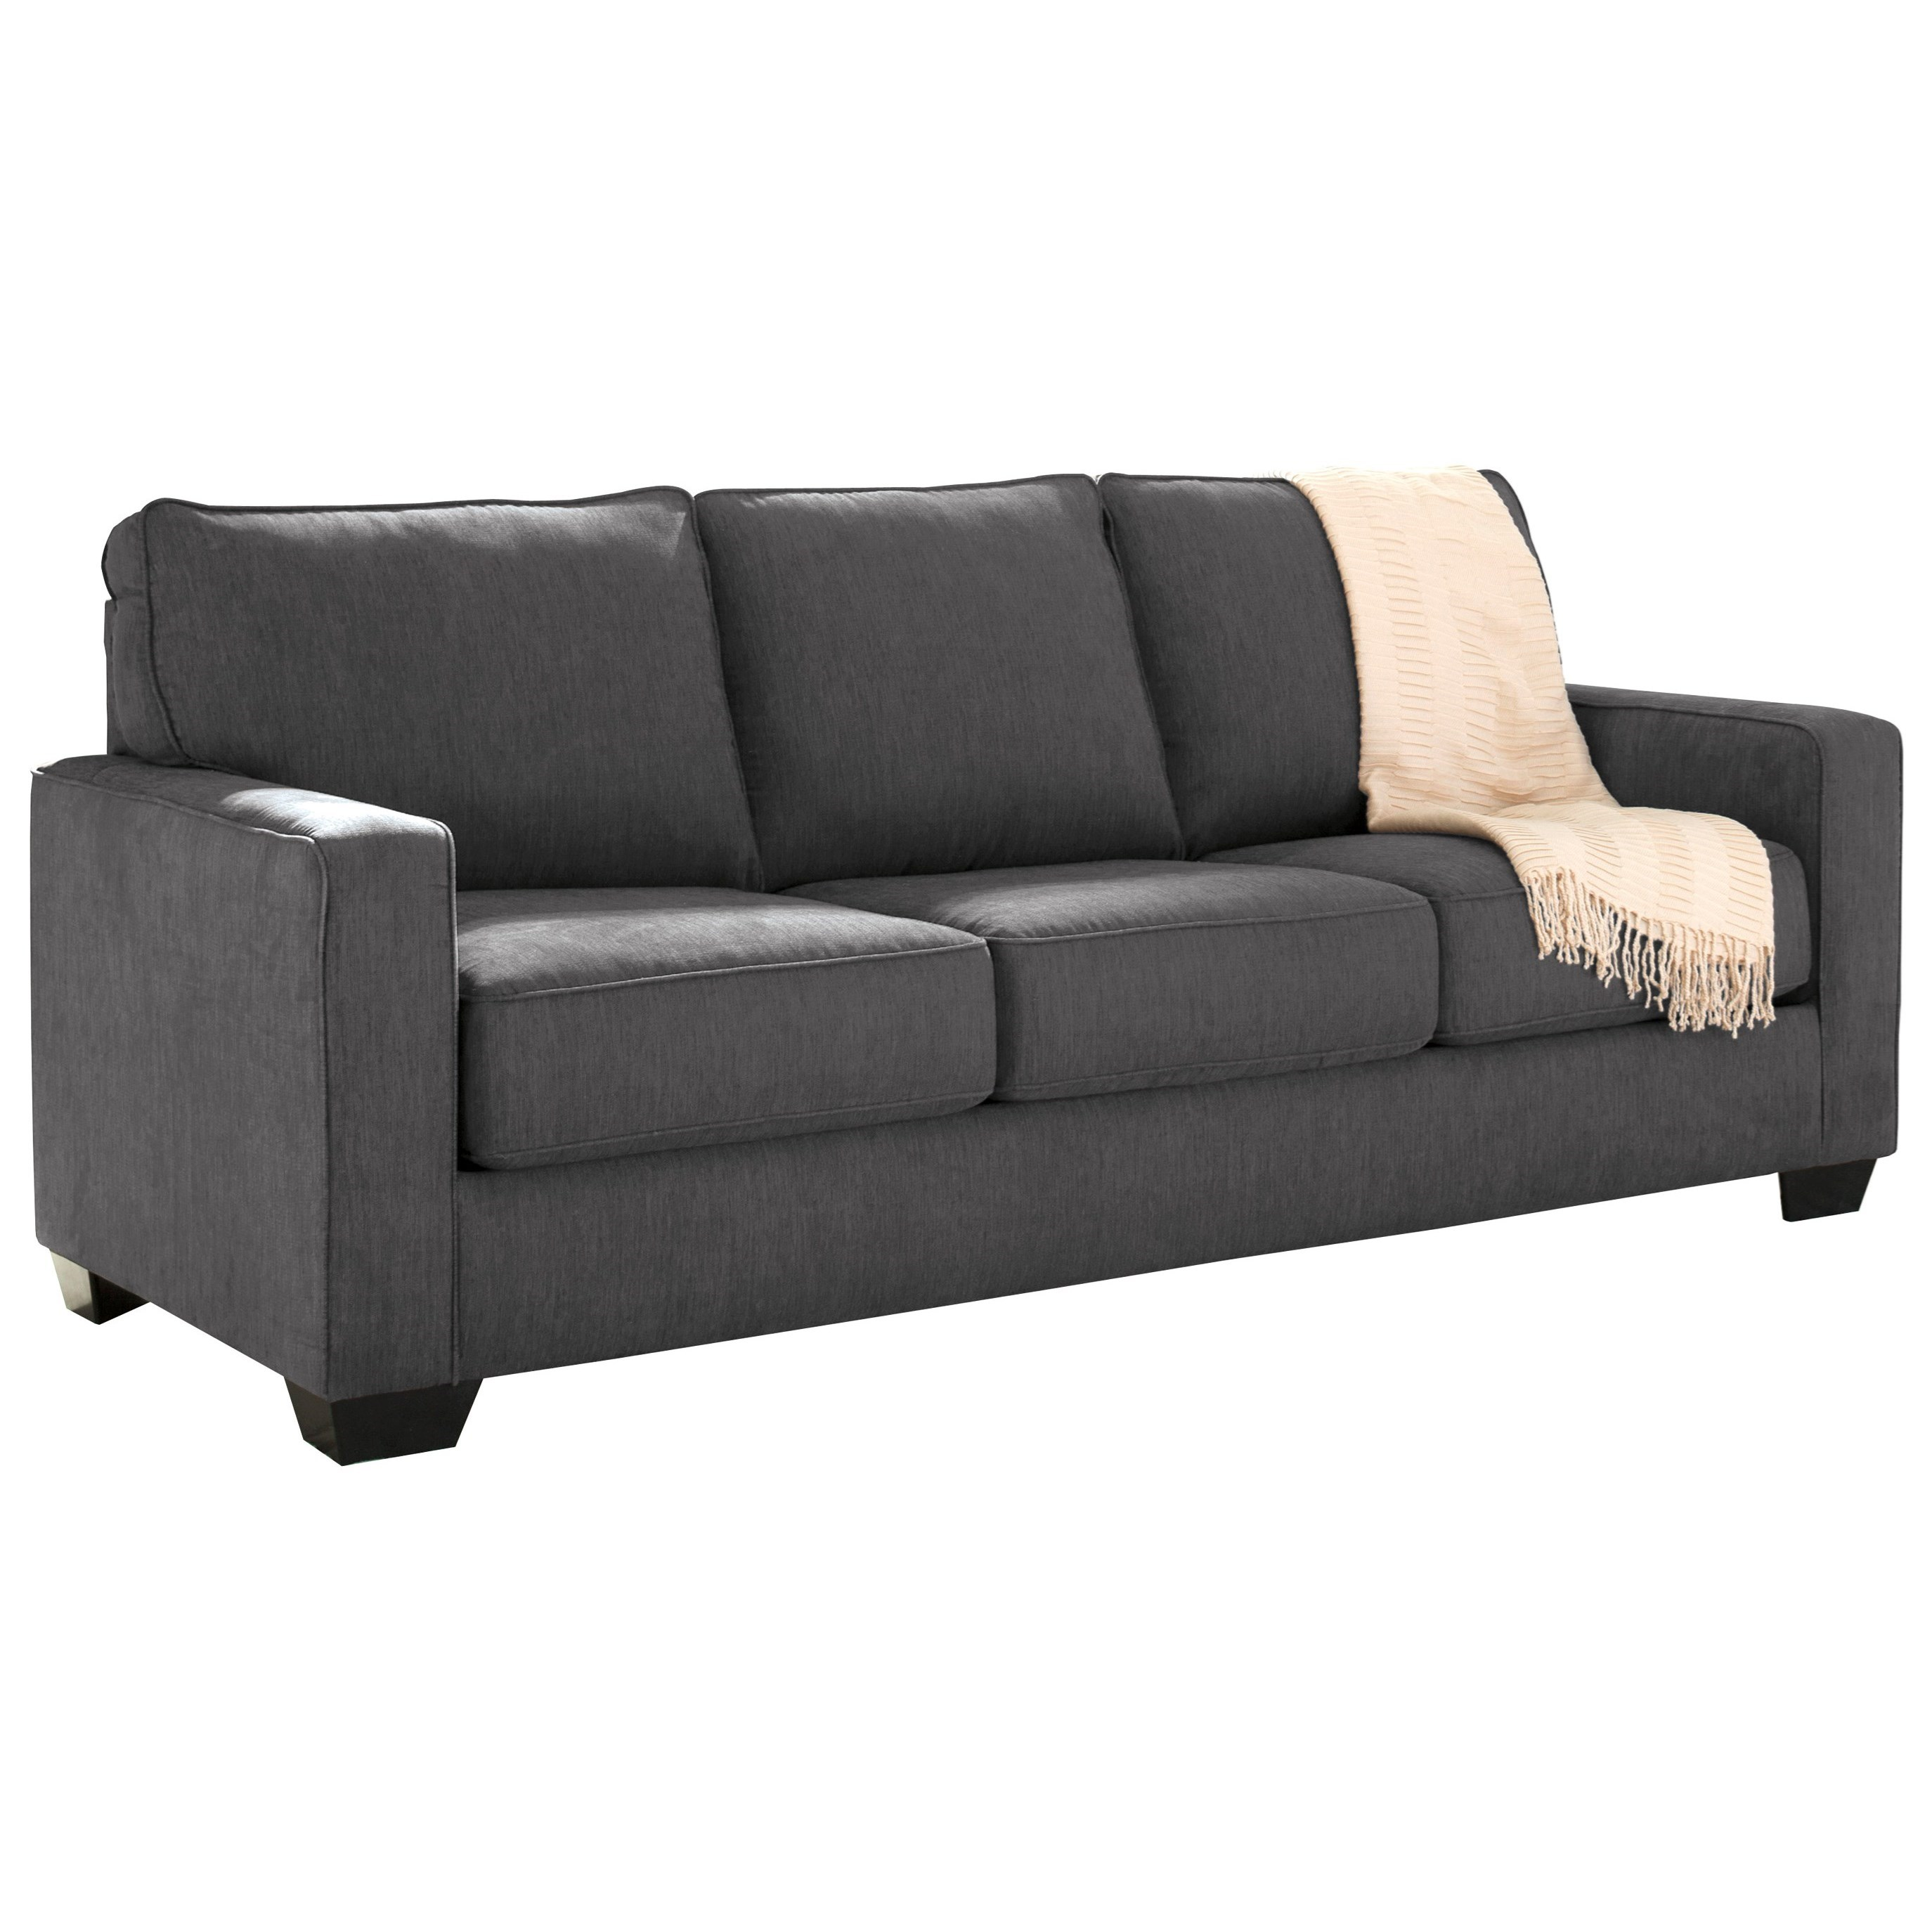 queen sleeper sofa memory foam mattress cost plus table with by signature design